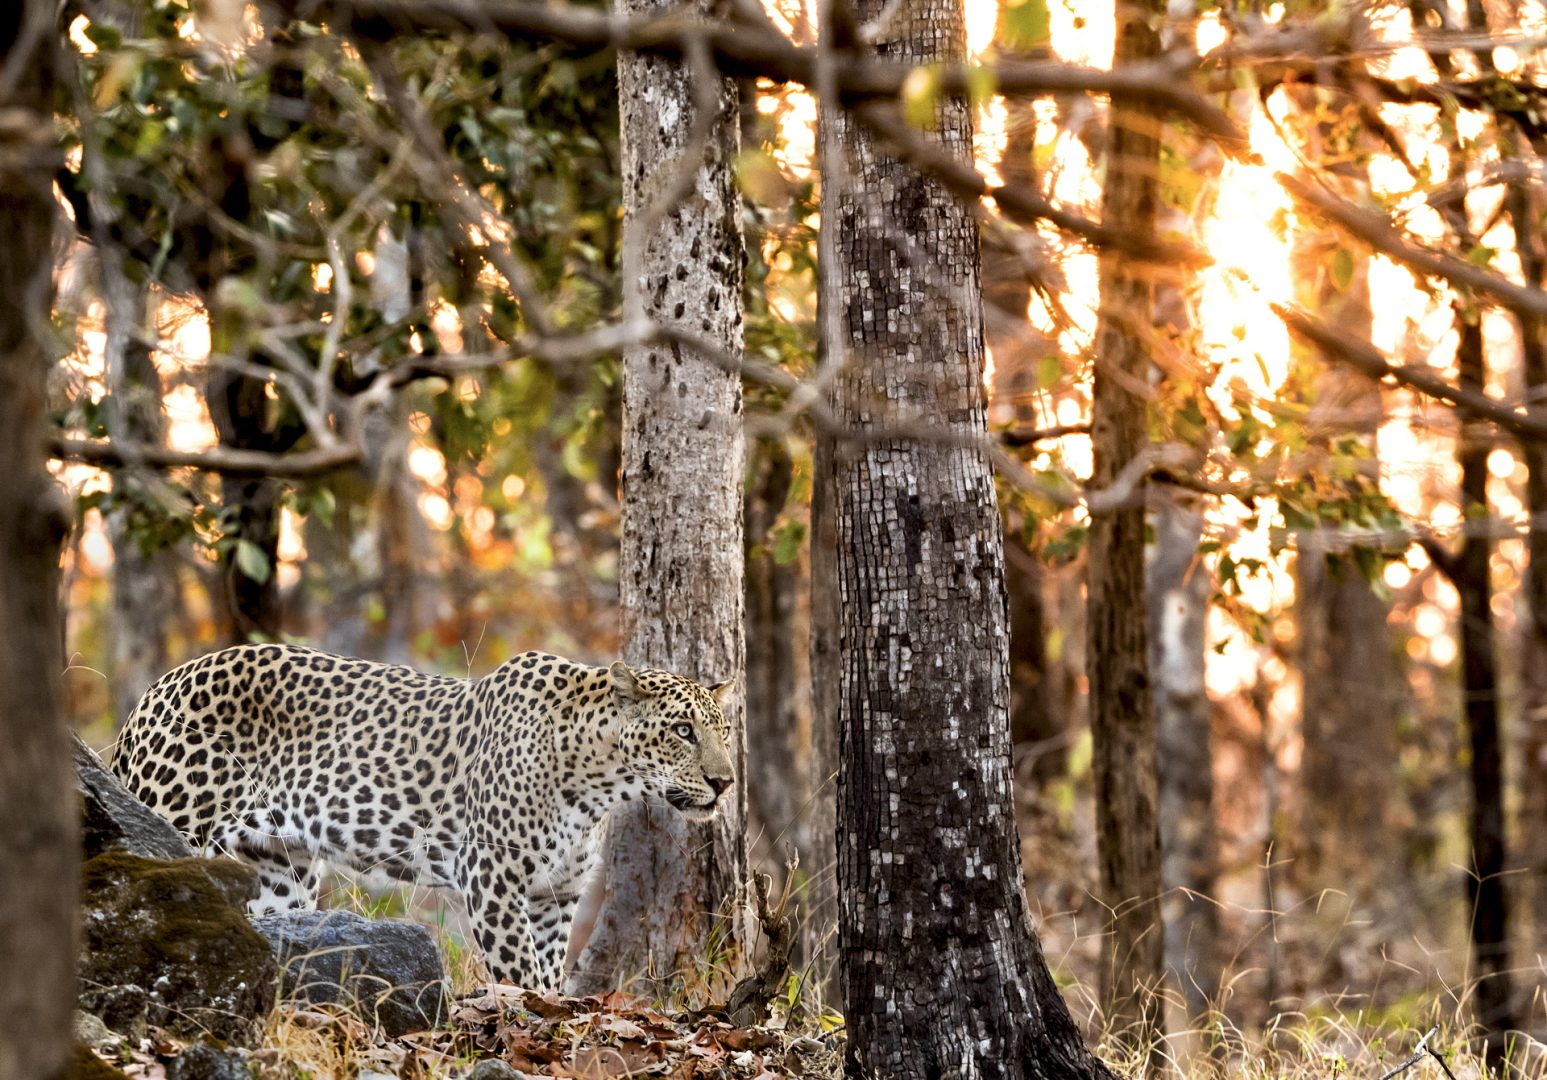 Pench National Park, India.